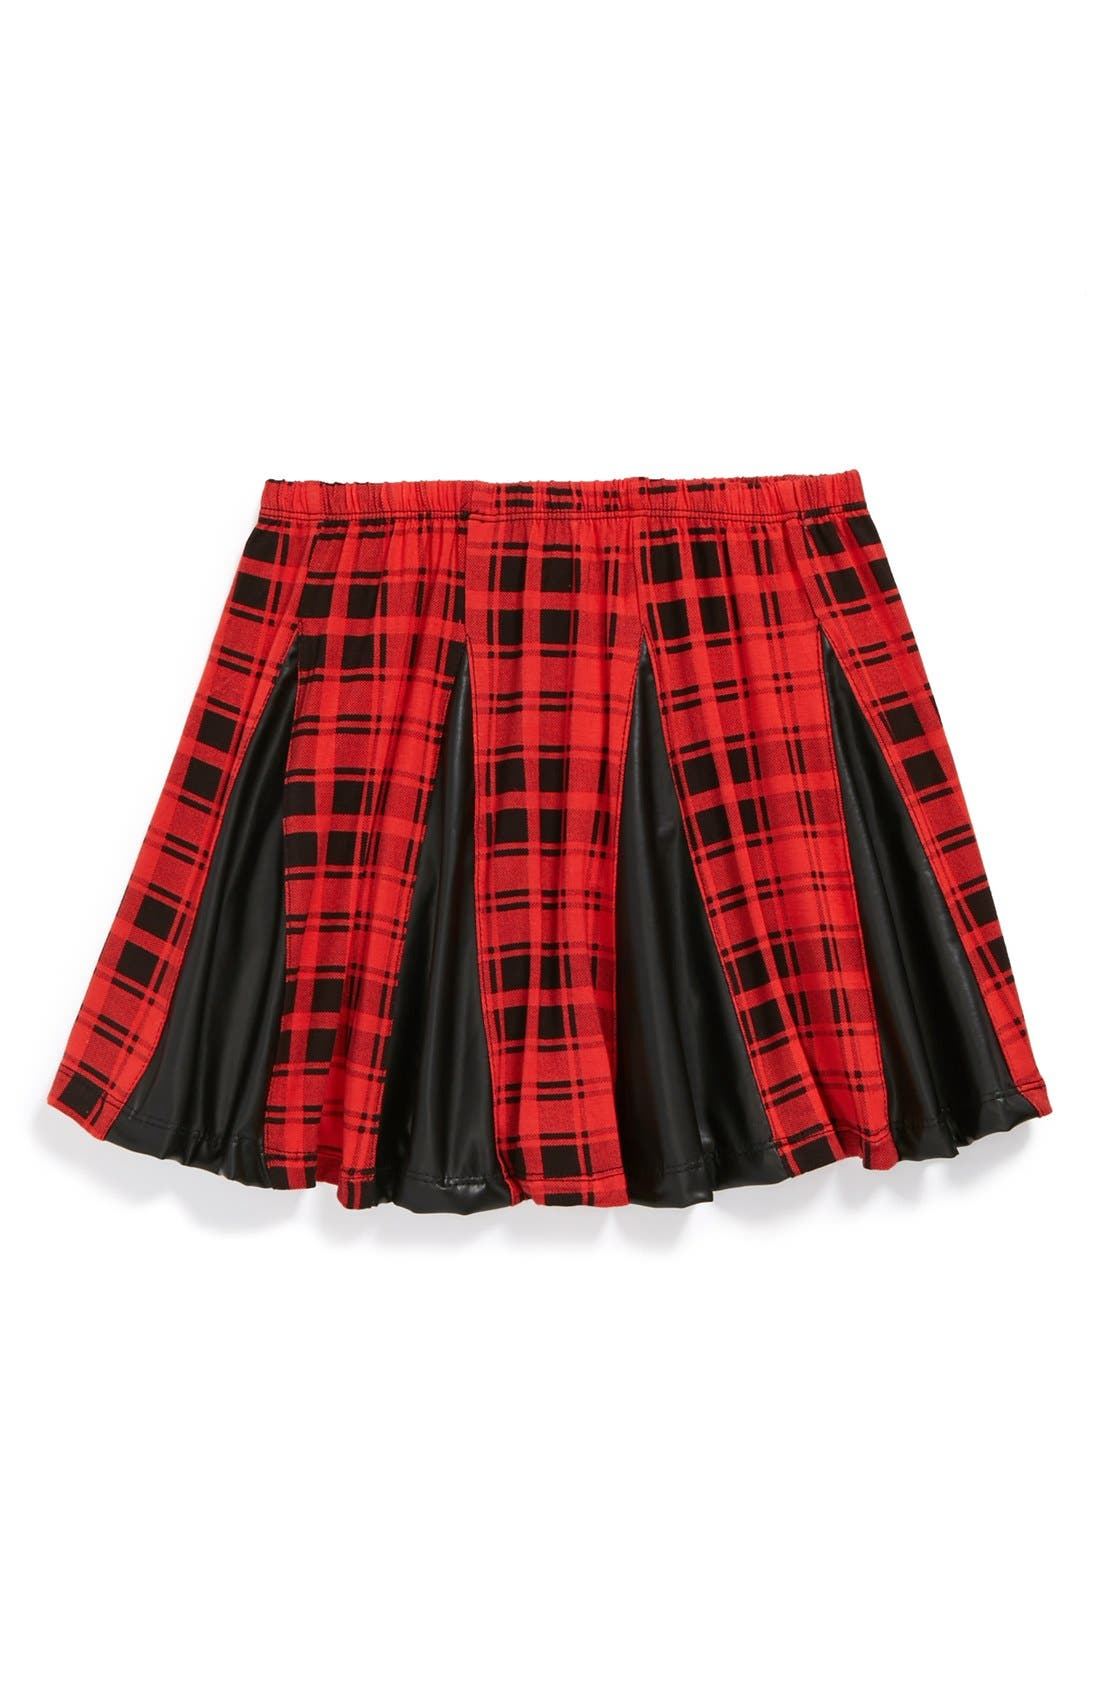 Alternate Image 1 Selected - Flowers by Zoe Pleated Plaid Skirt (Big Girls)